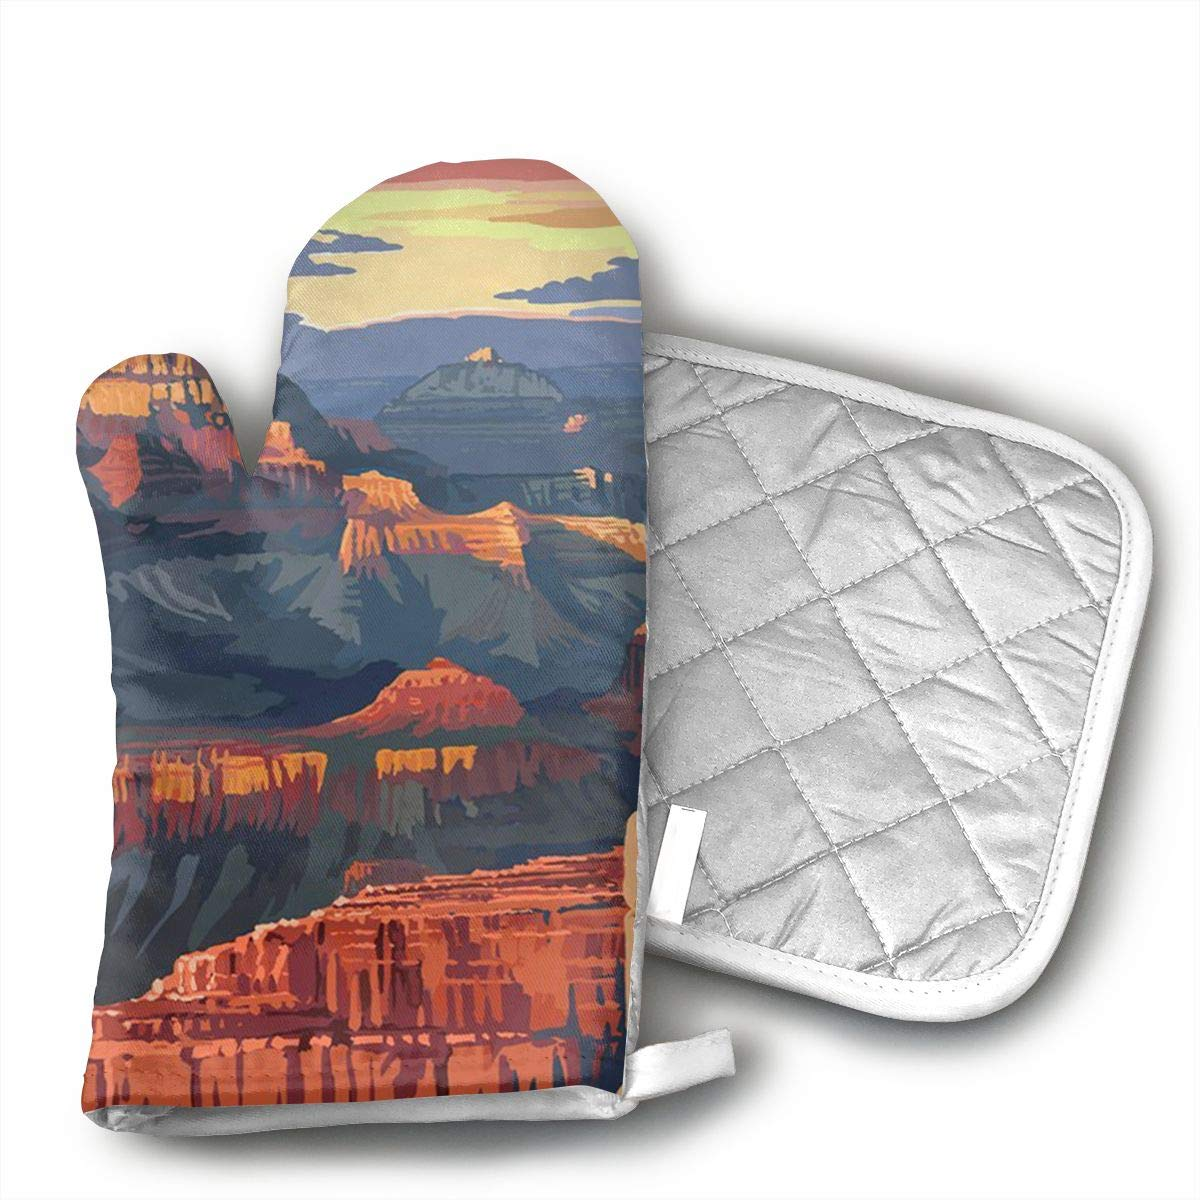 GUYDHL Unisex Oven Mitt and Pot Holder for Grand Canyon National Park - Mather Point - 2 Pair